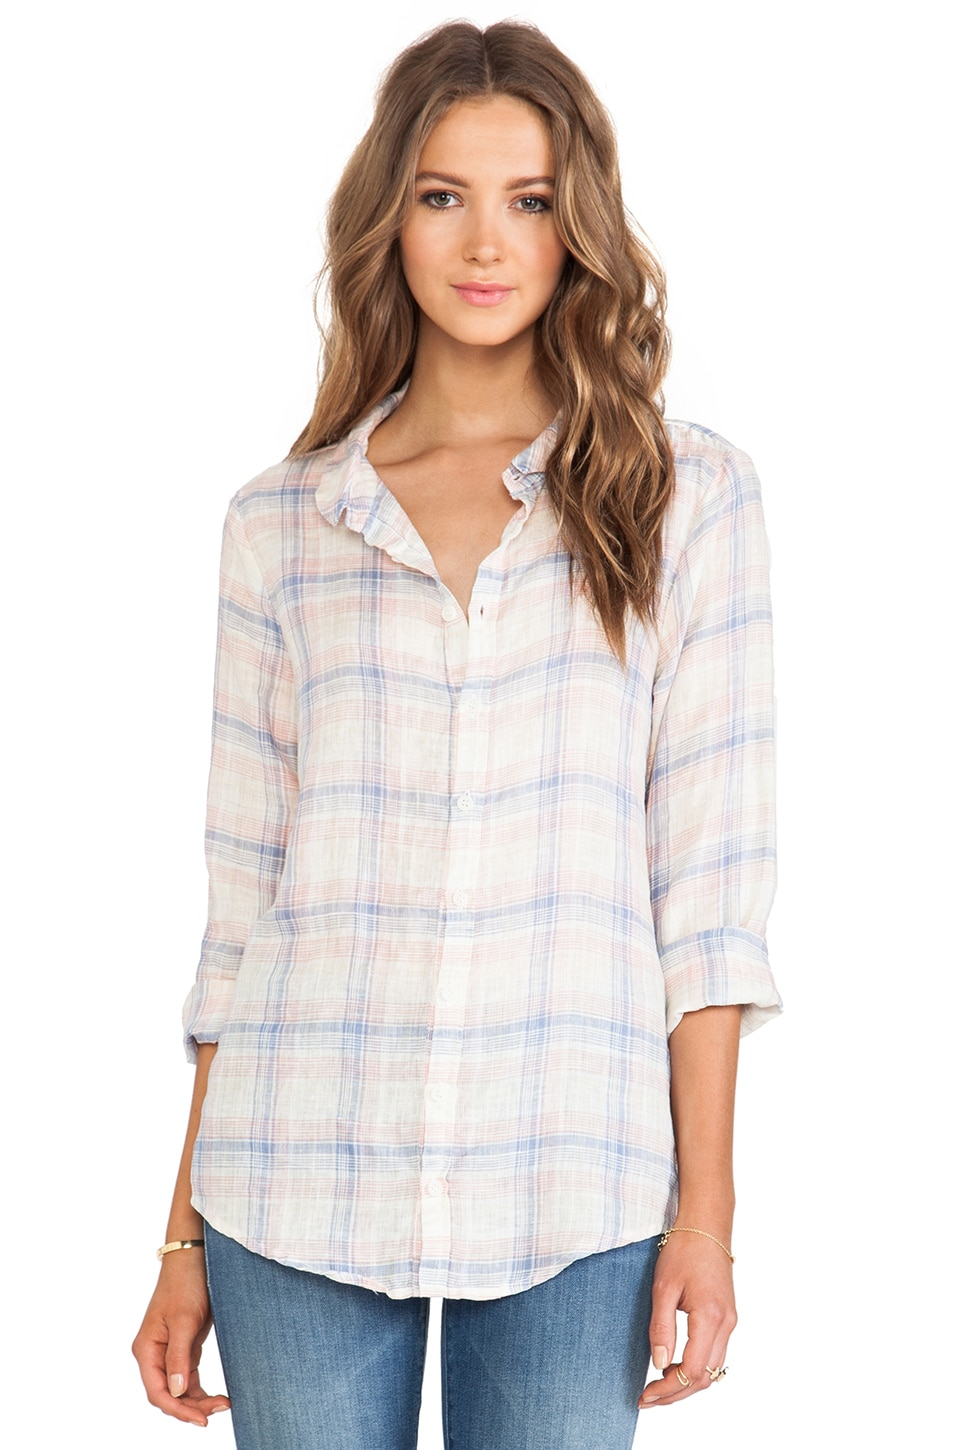 CP SHADES Sophia Plaid Shirt in Peach